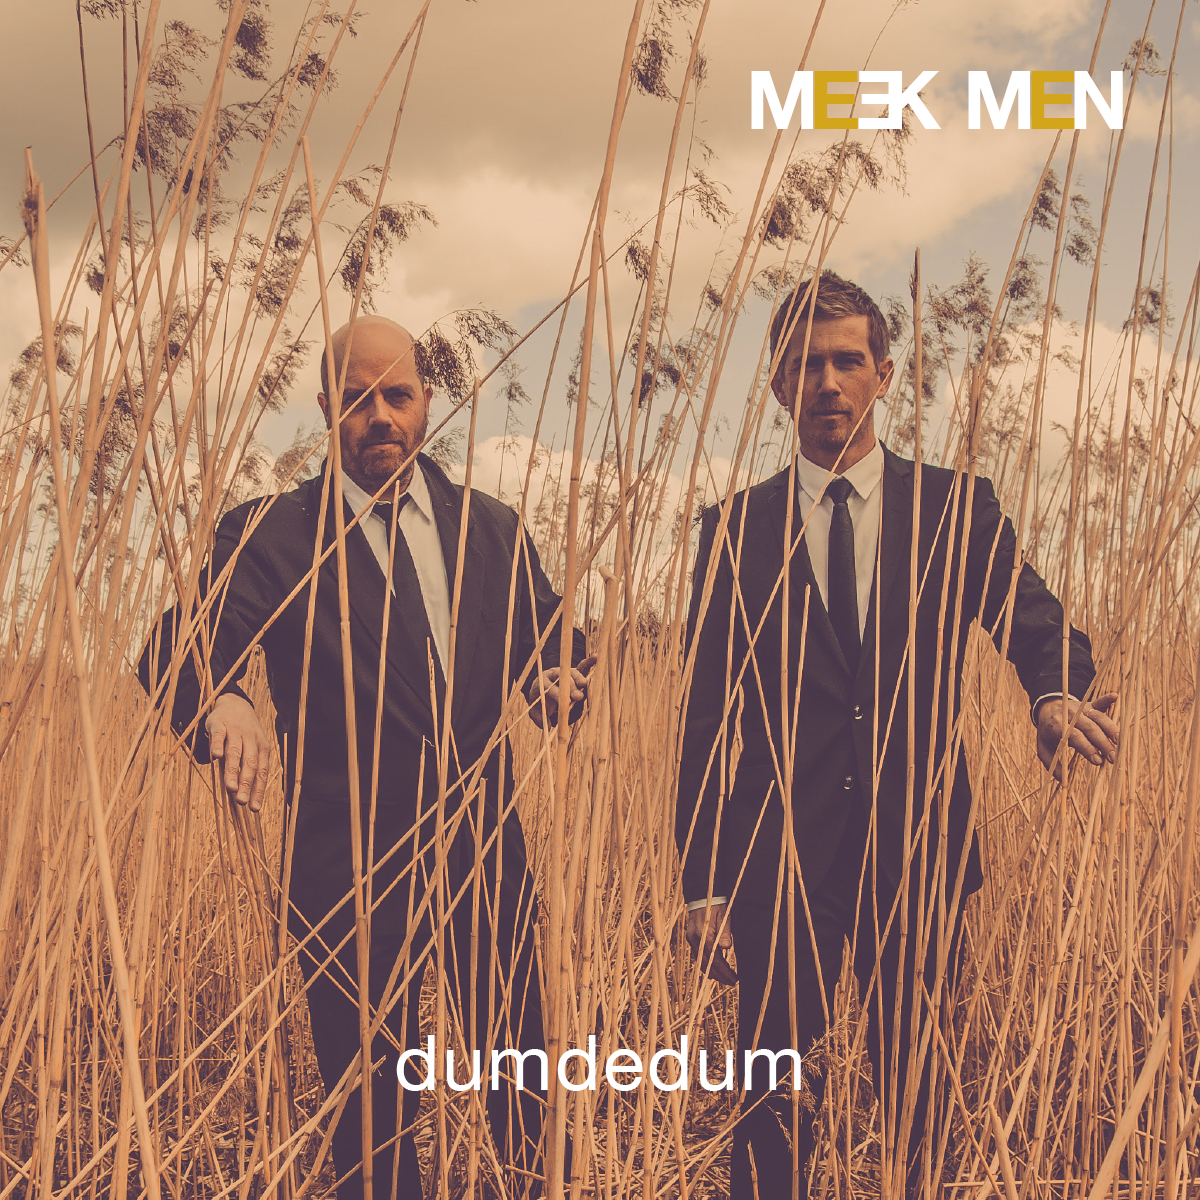 MeekMen_CD-cover_medium.jpg